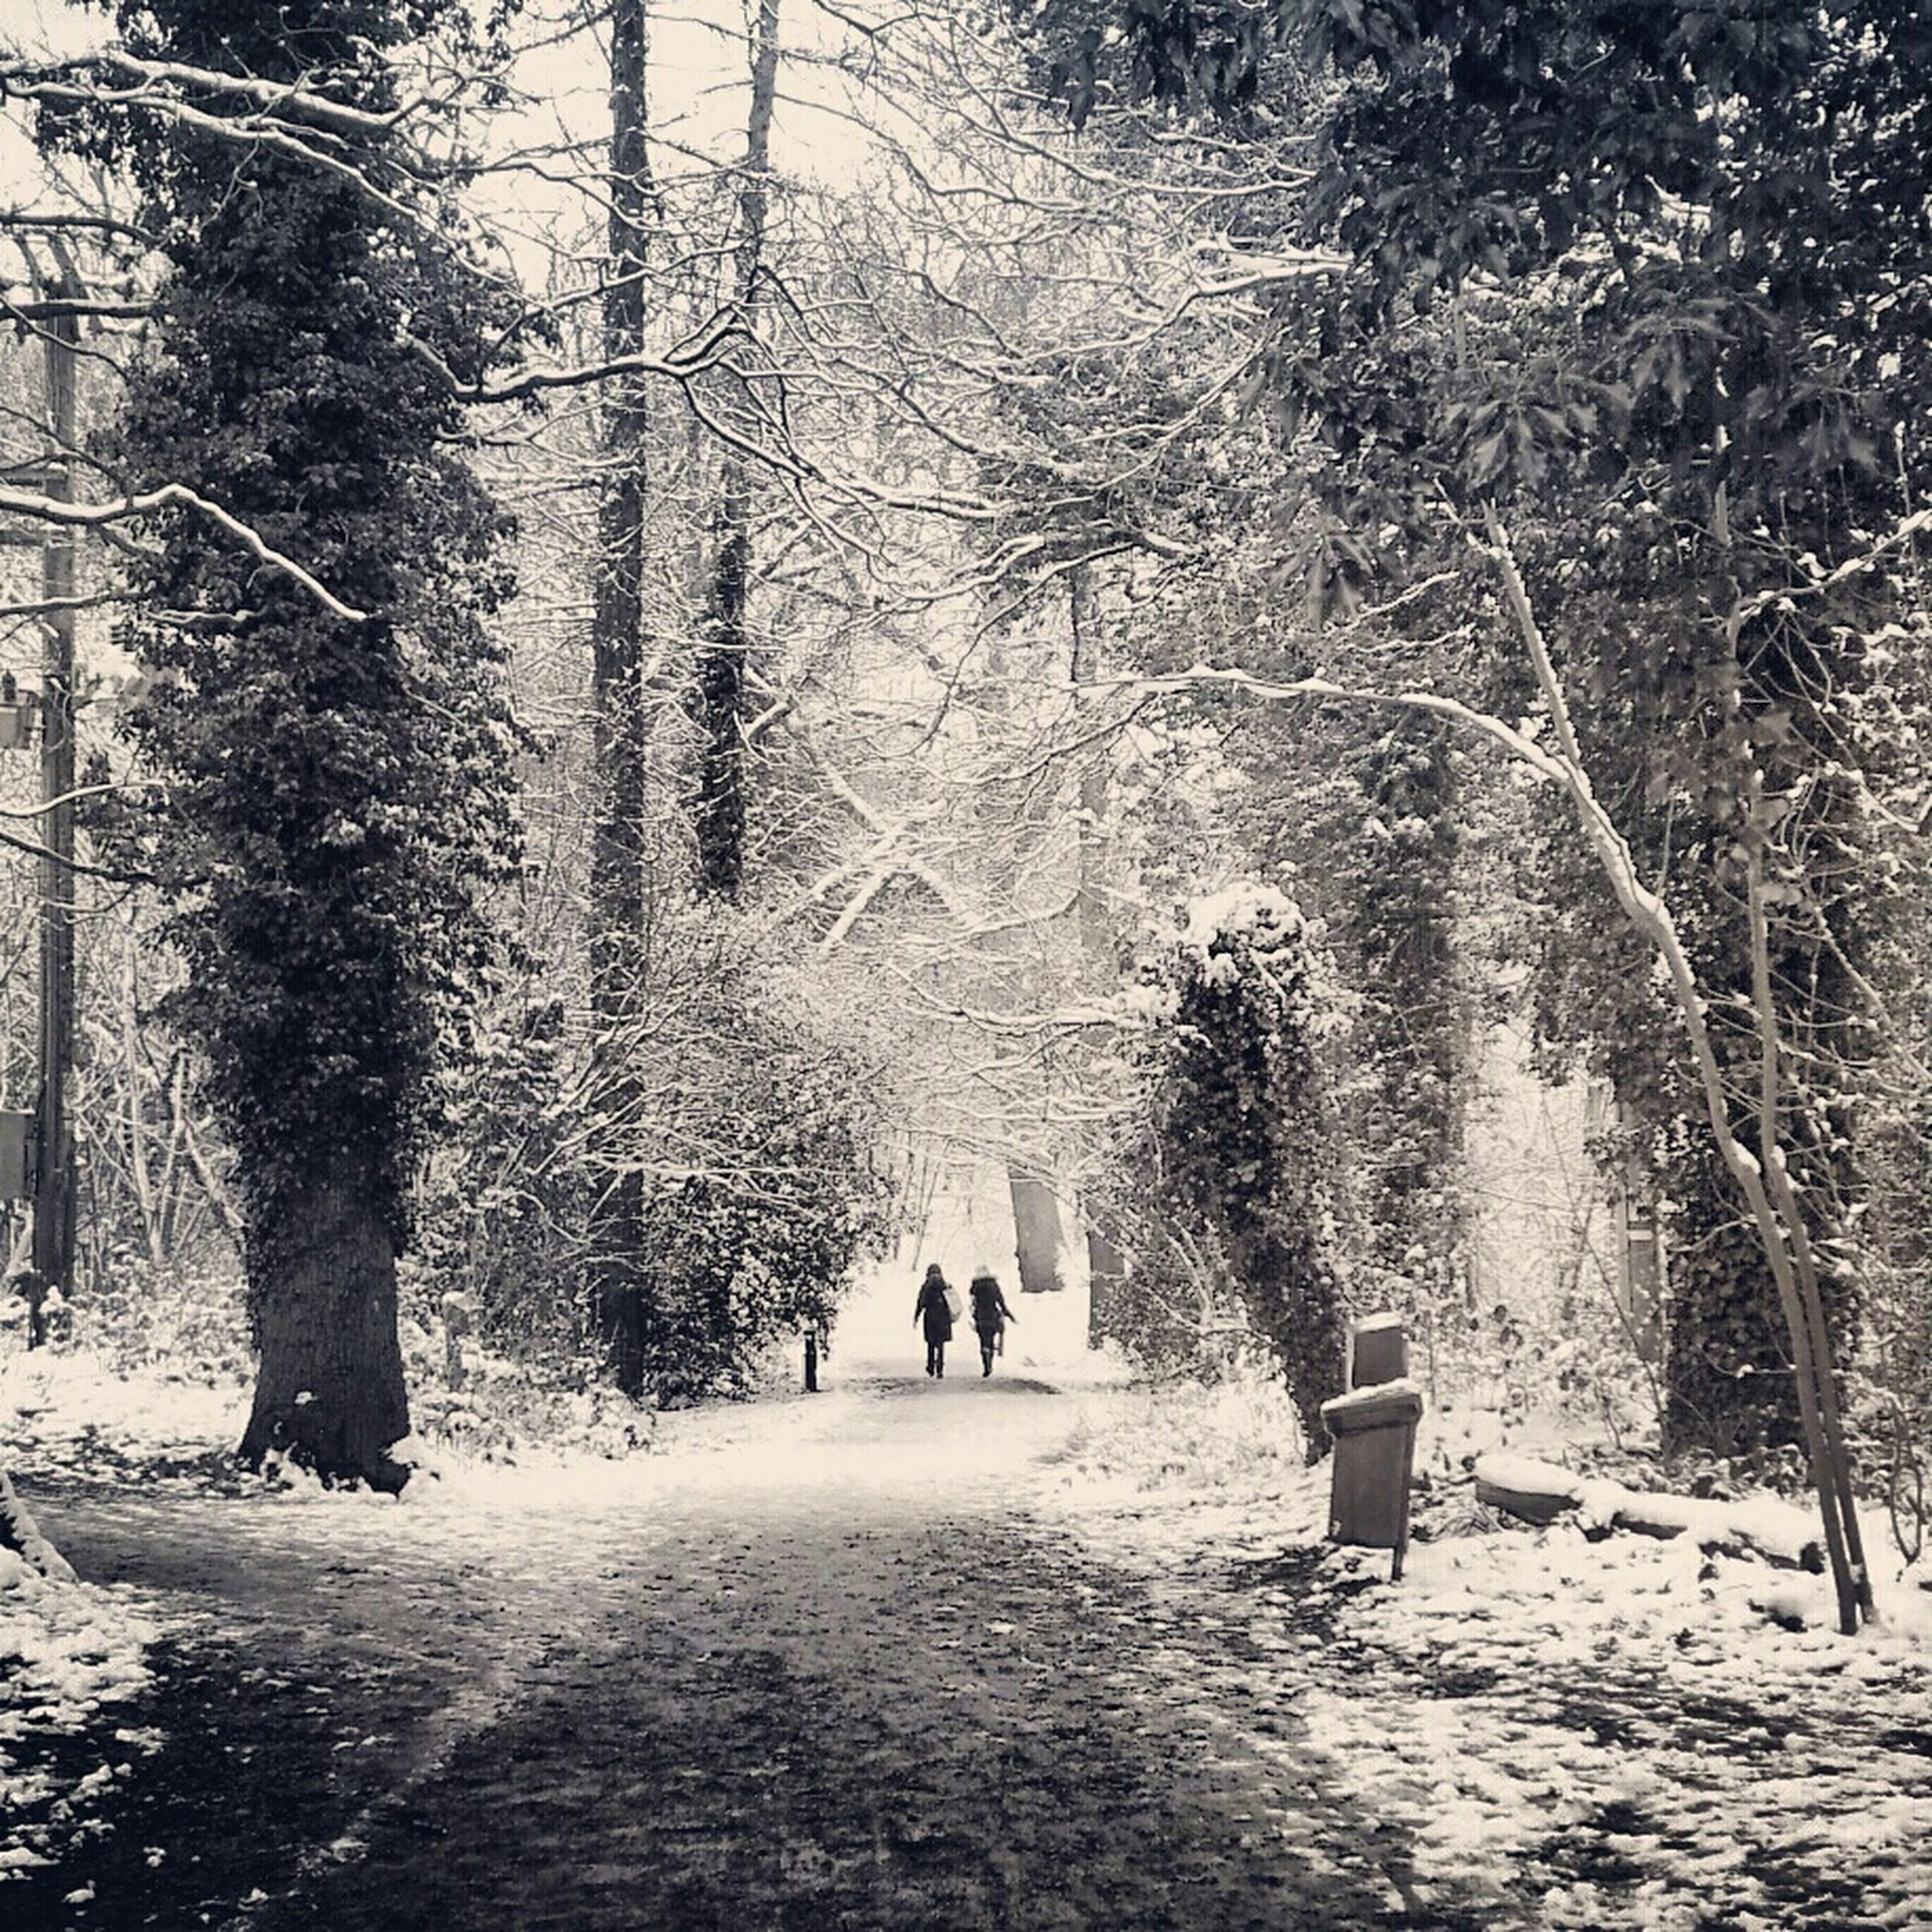 tree, walking, forest, leisure activity, tree trunk, lifestyles, men, the way forward, winter, nature, woodland, season, full length, cold temperature, snow, rear view, tranquility, growth, person